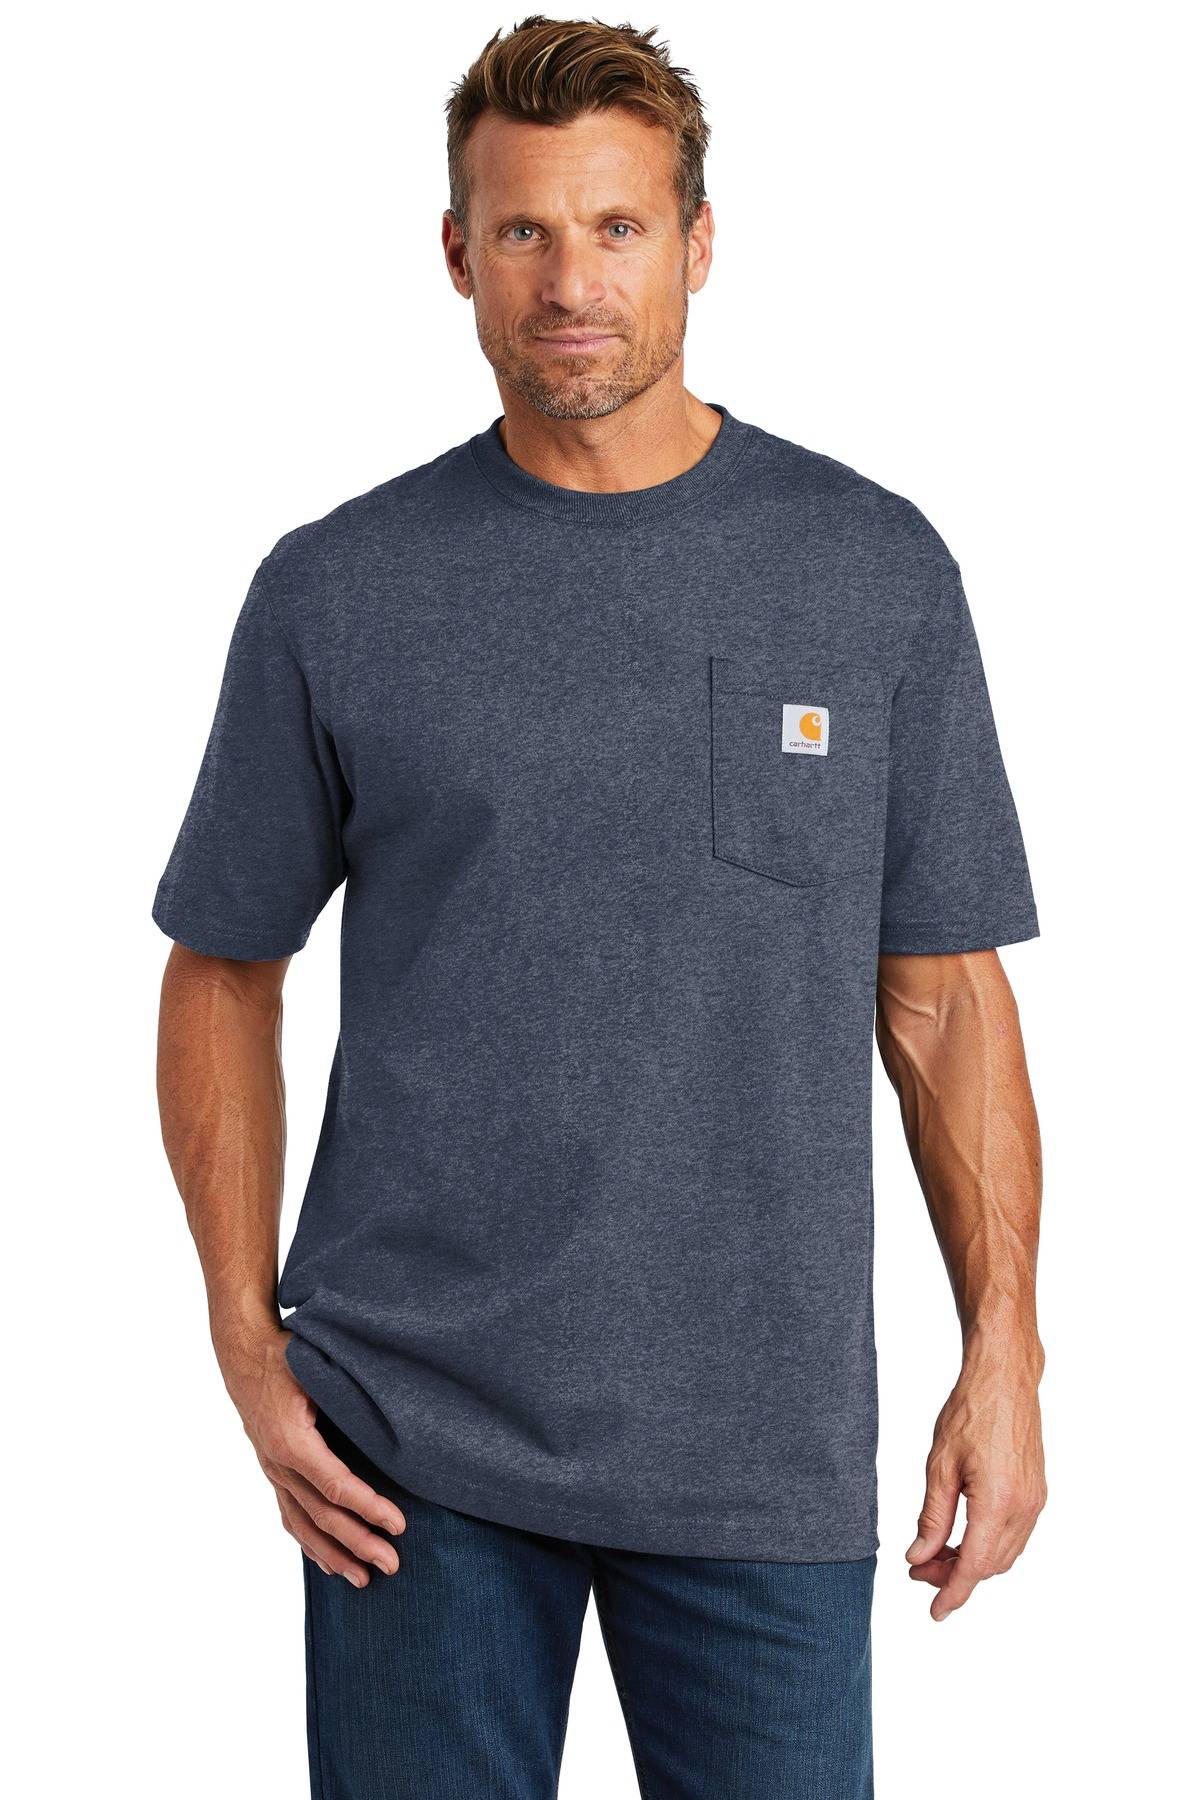 Carhartt  ®  Workwear Pocket Short Sleeve T-Shirt. CTK87 - Dark Cobalt Blue Heather